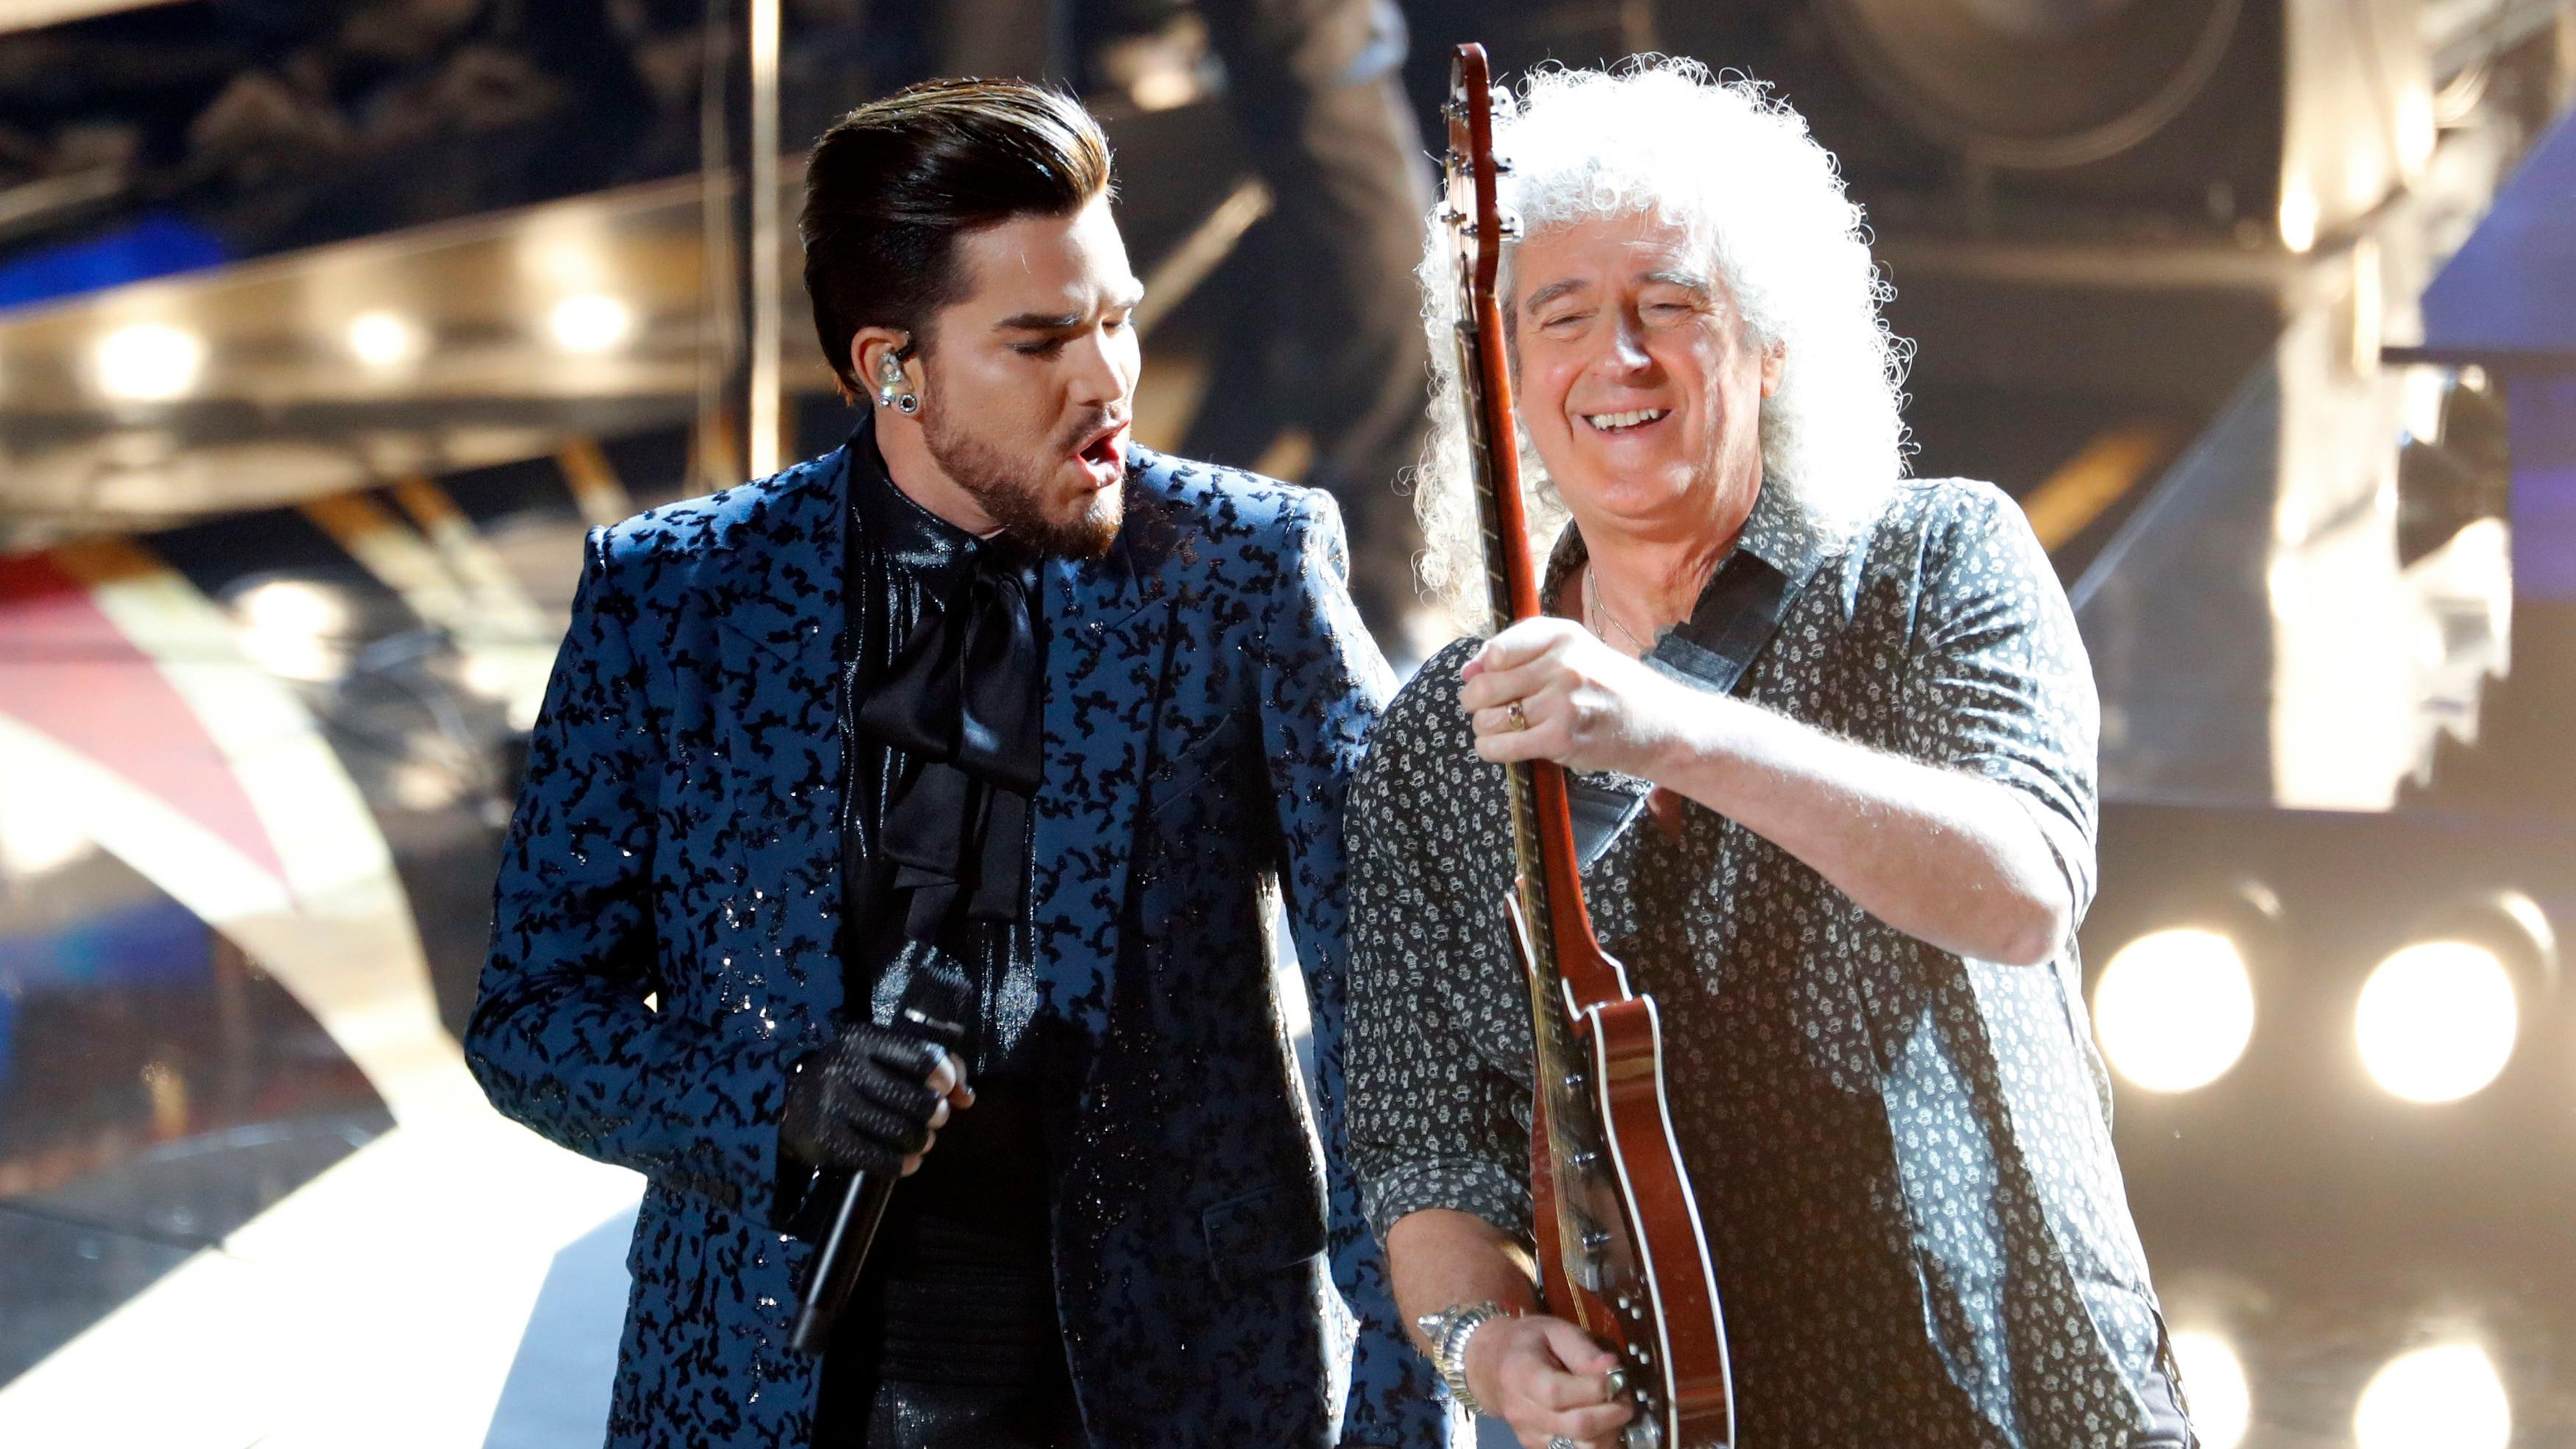 Queen divide audience at Oscars ceremony